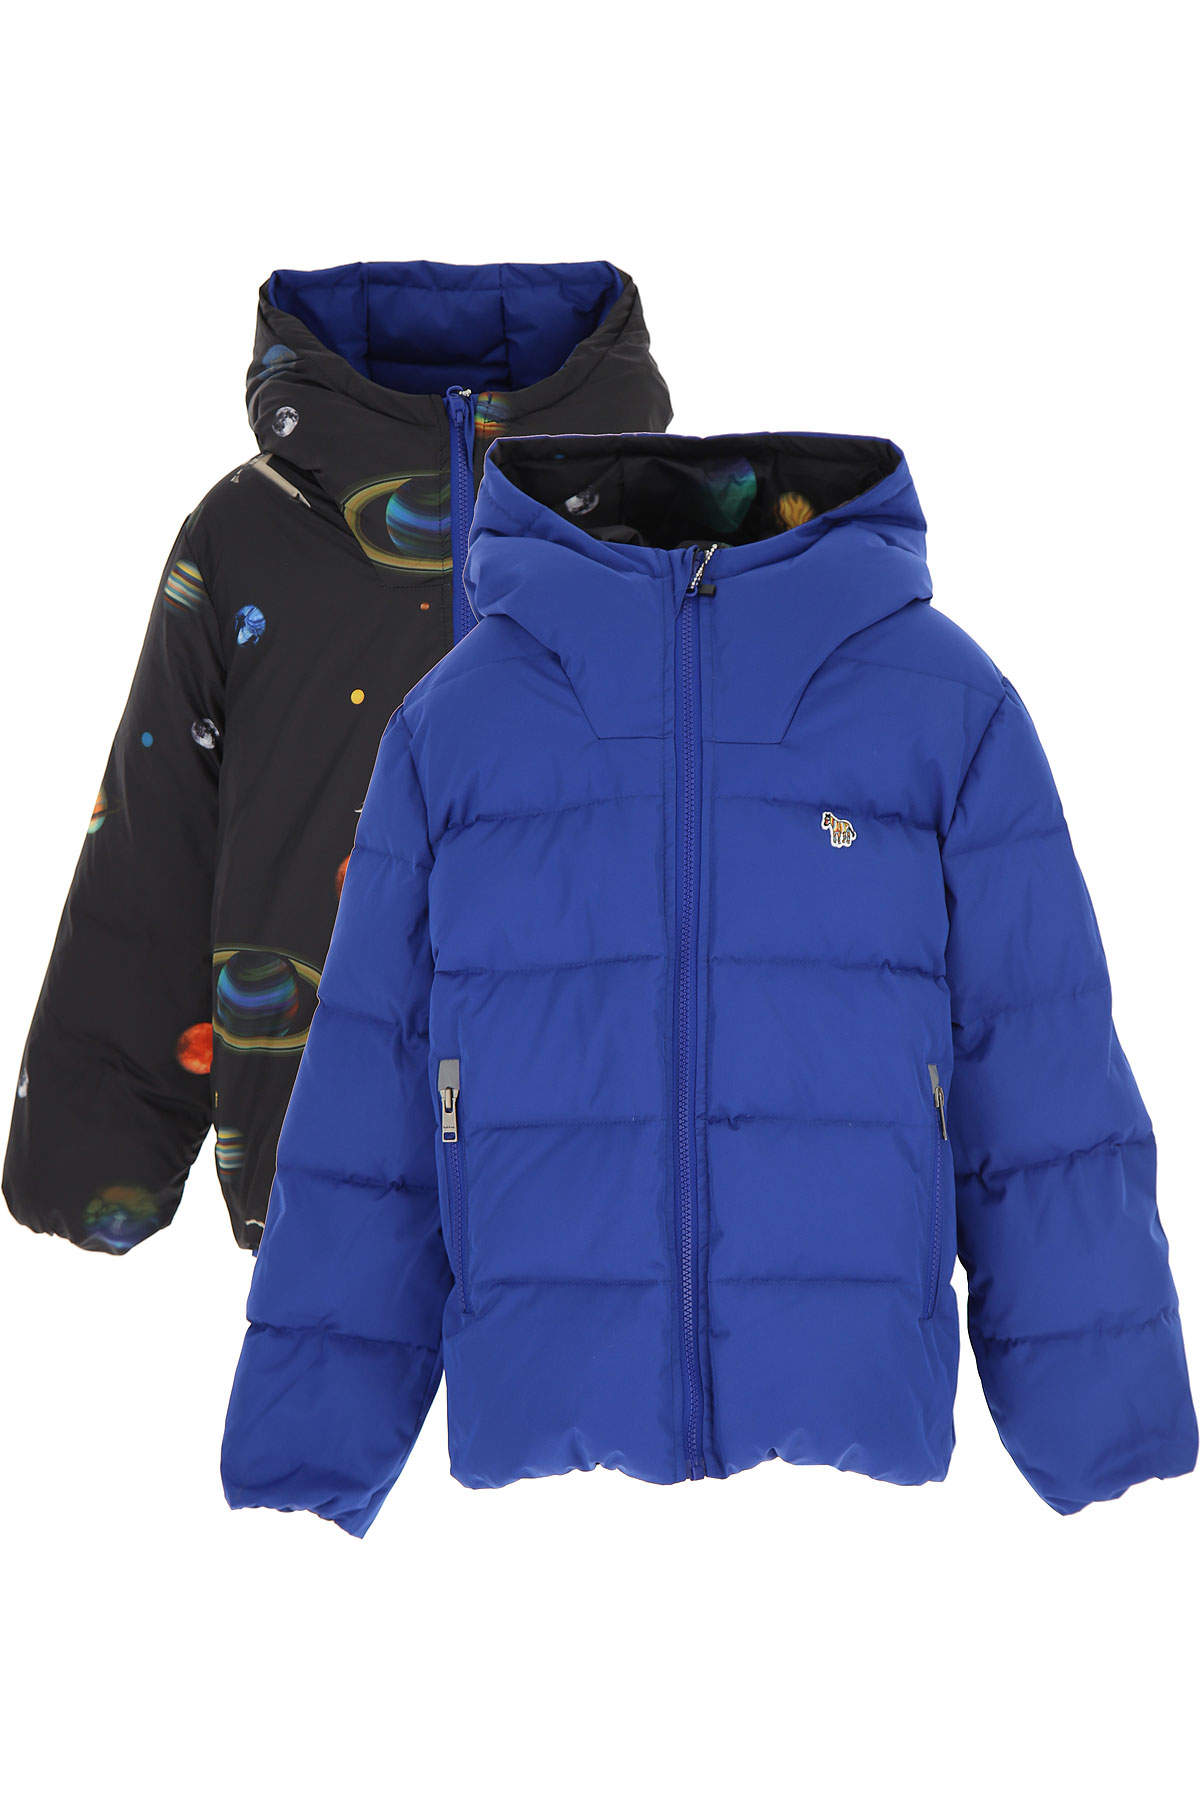 Paul Smith Boys Down Jacket for Kids, Puffer Ski Jacket On Sale, Black, polyester, 2019, 10Y 14Y